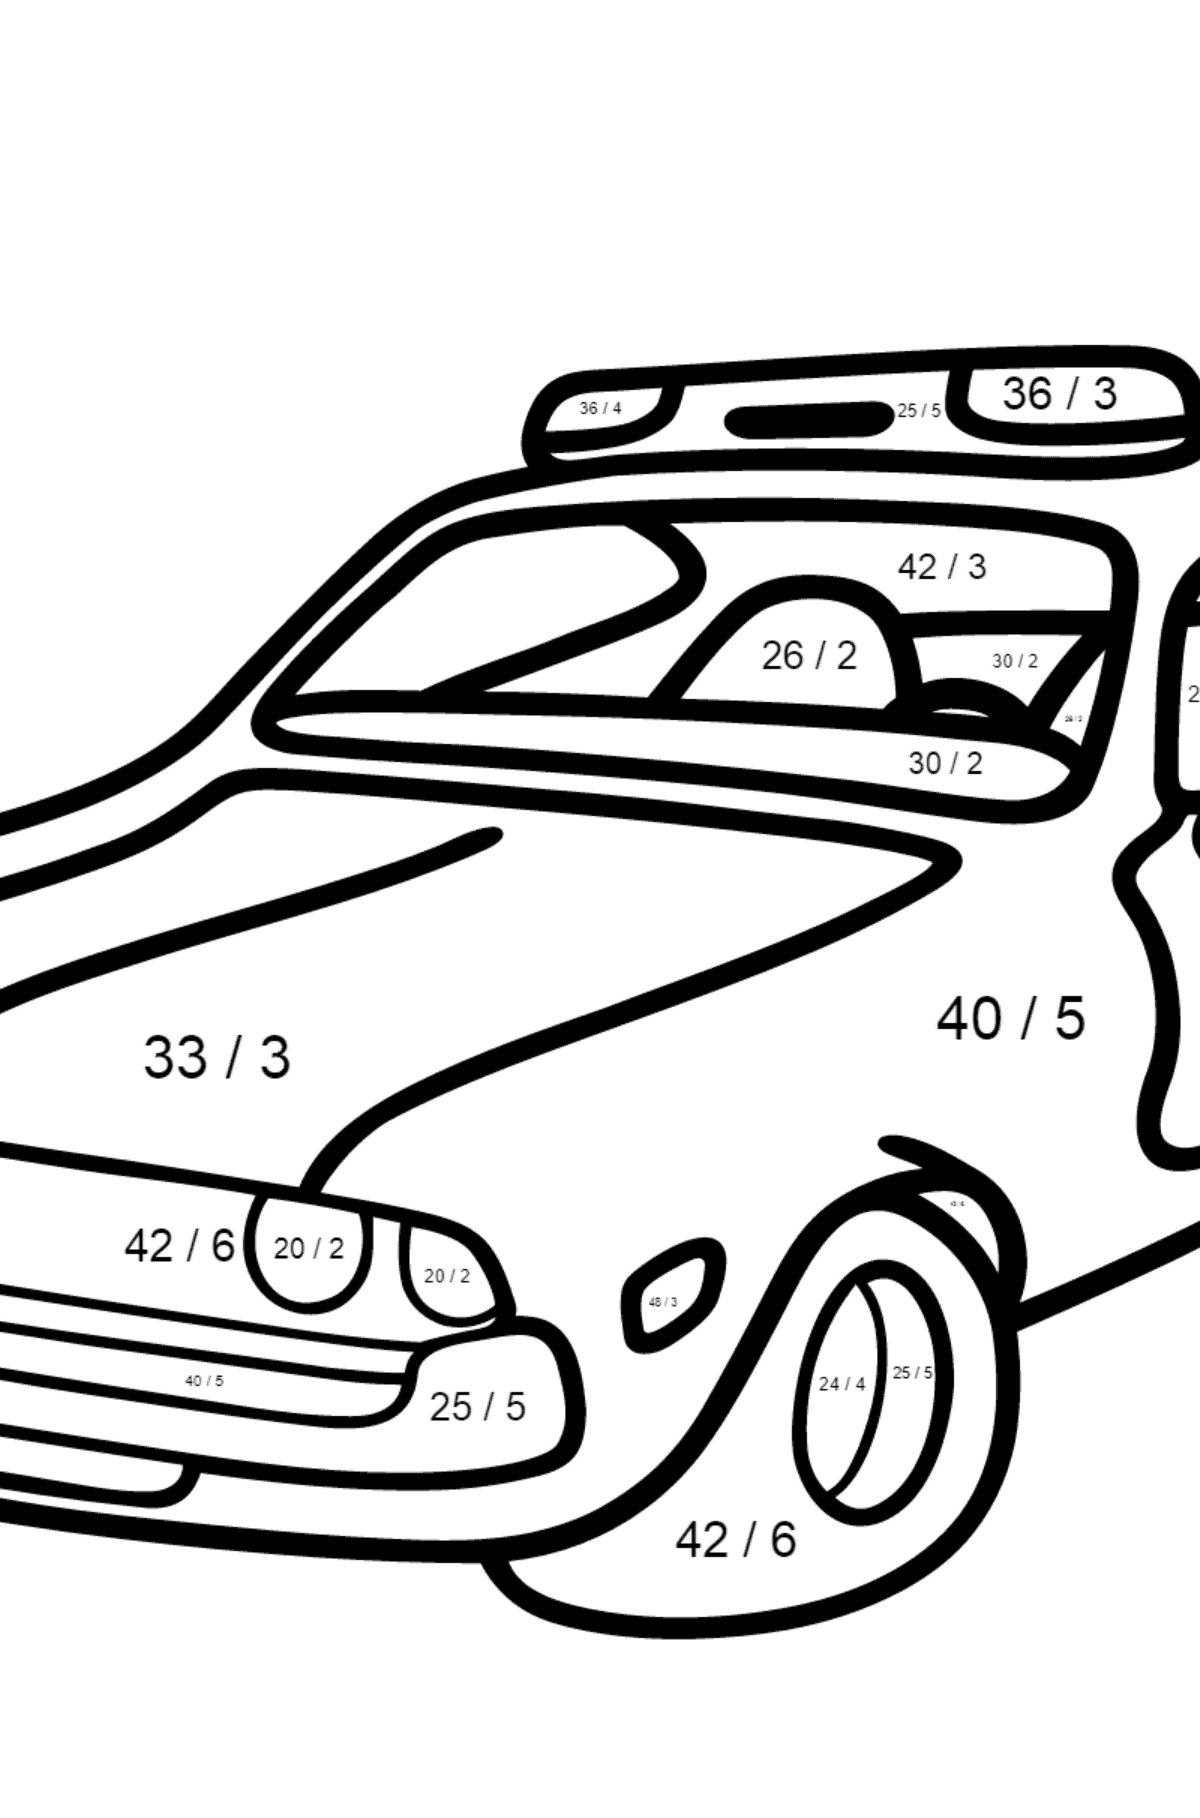 Coloring Page - A Dark Gray Police Car for Children  - Color by Number Division